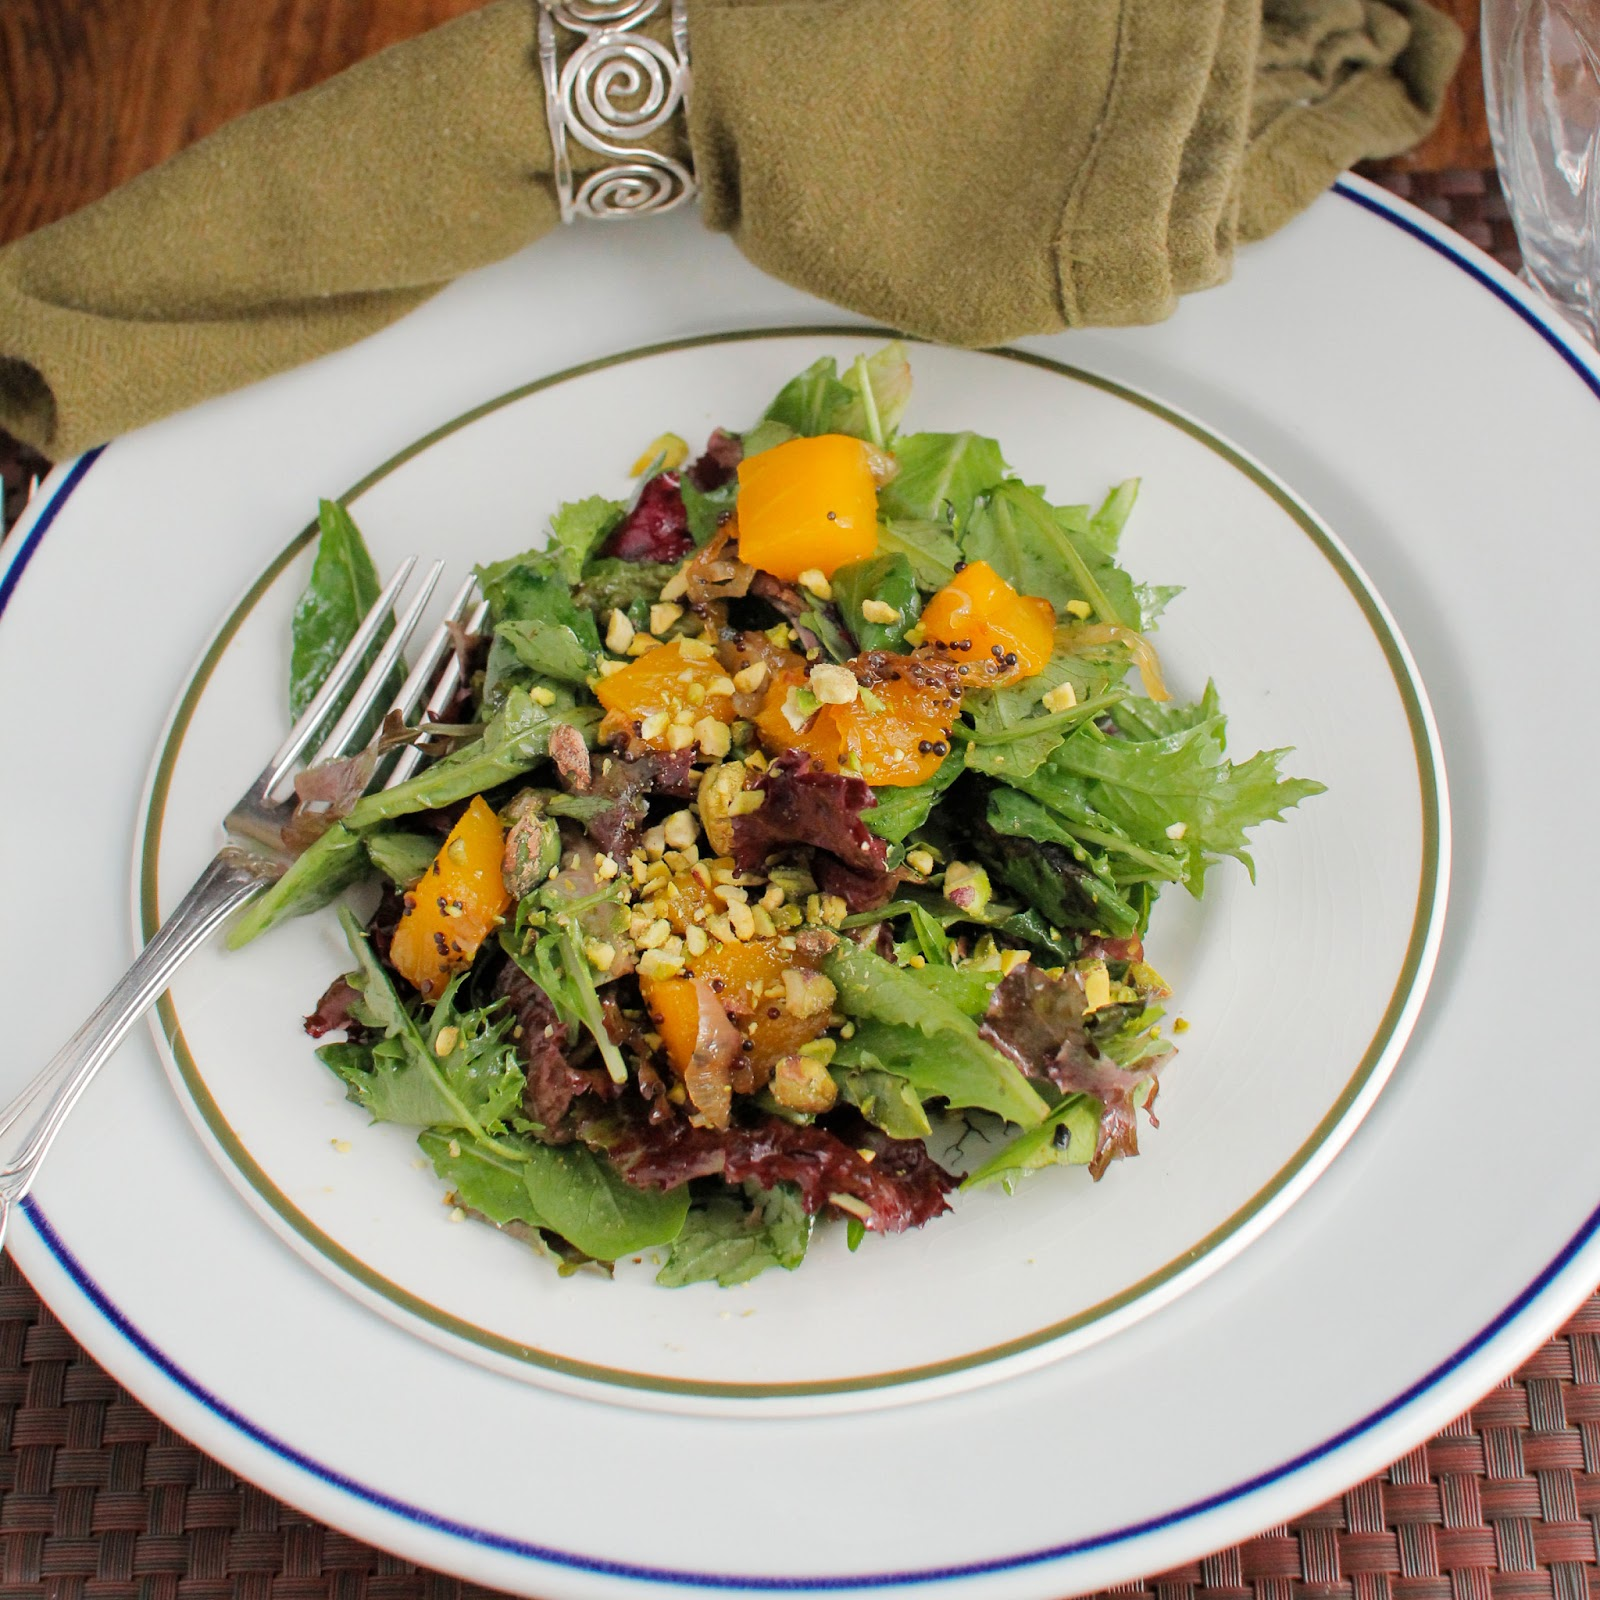 Caramelized Mango And Shallot Salad Recipes — Dishmaps